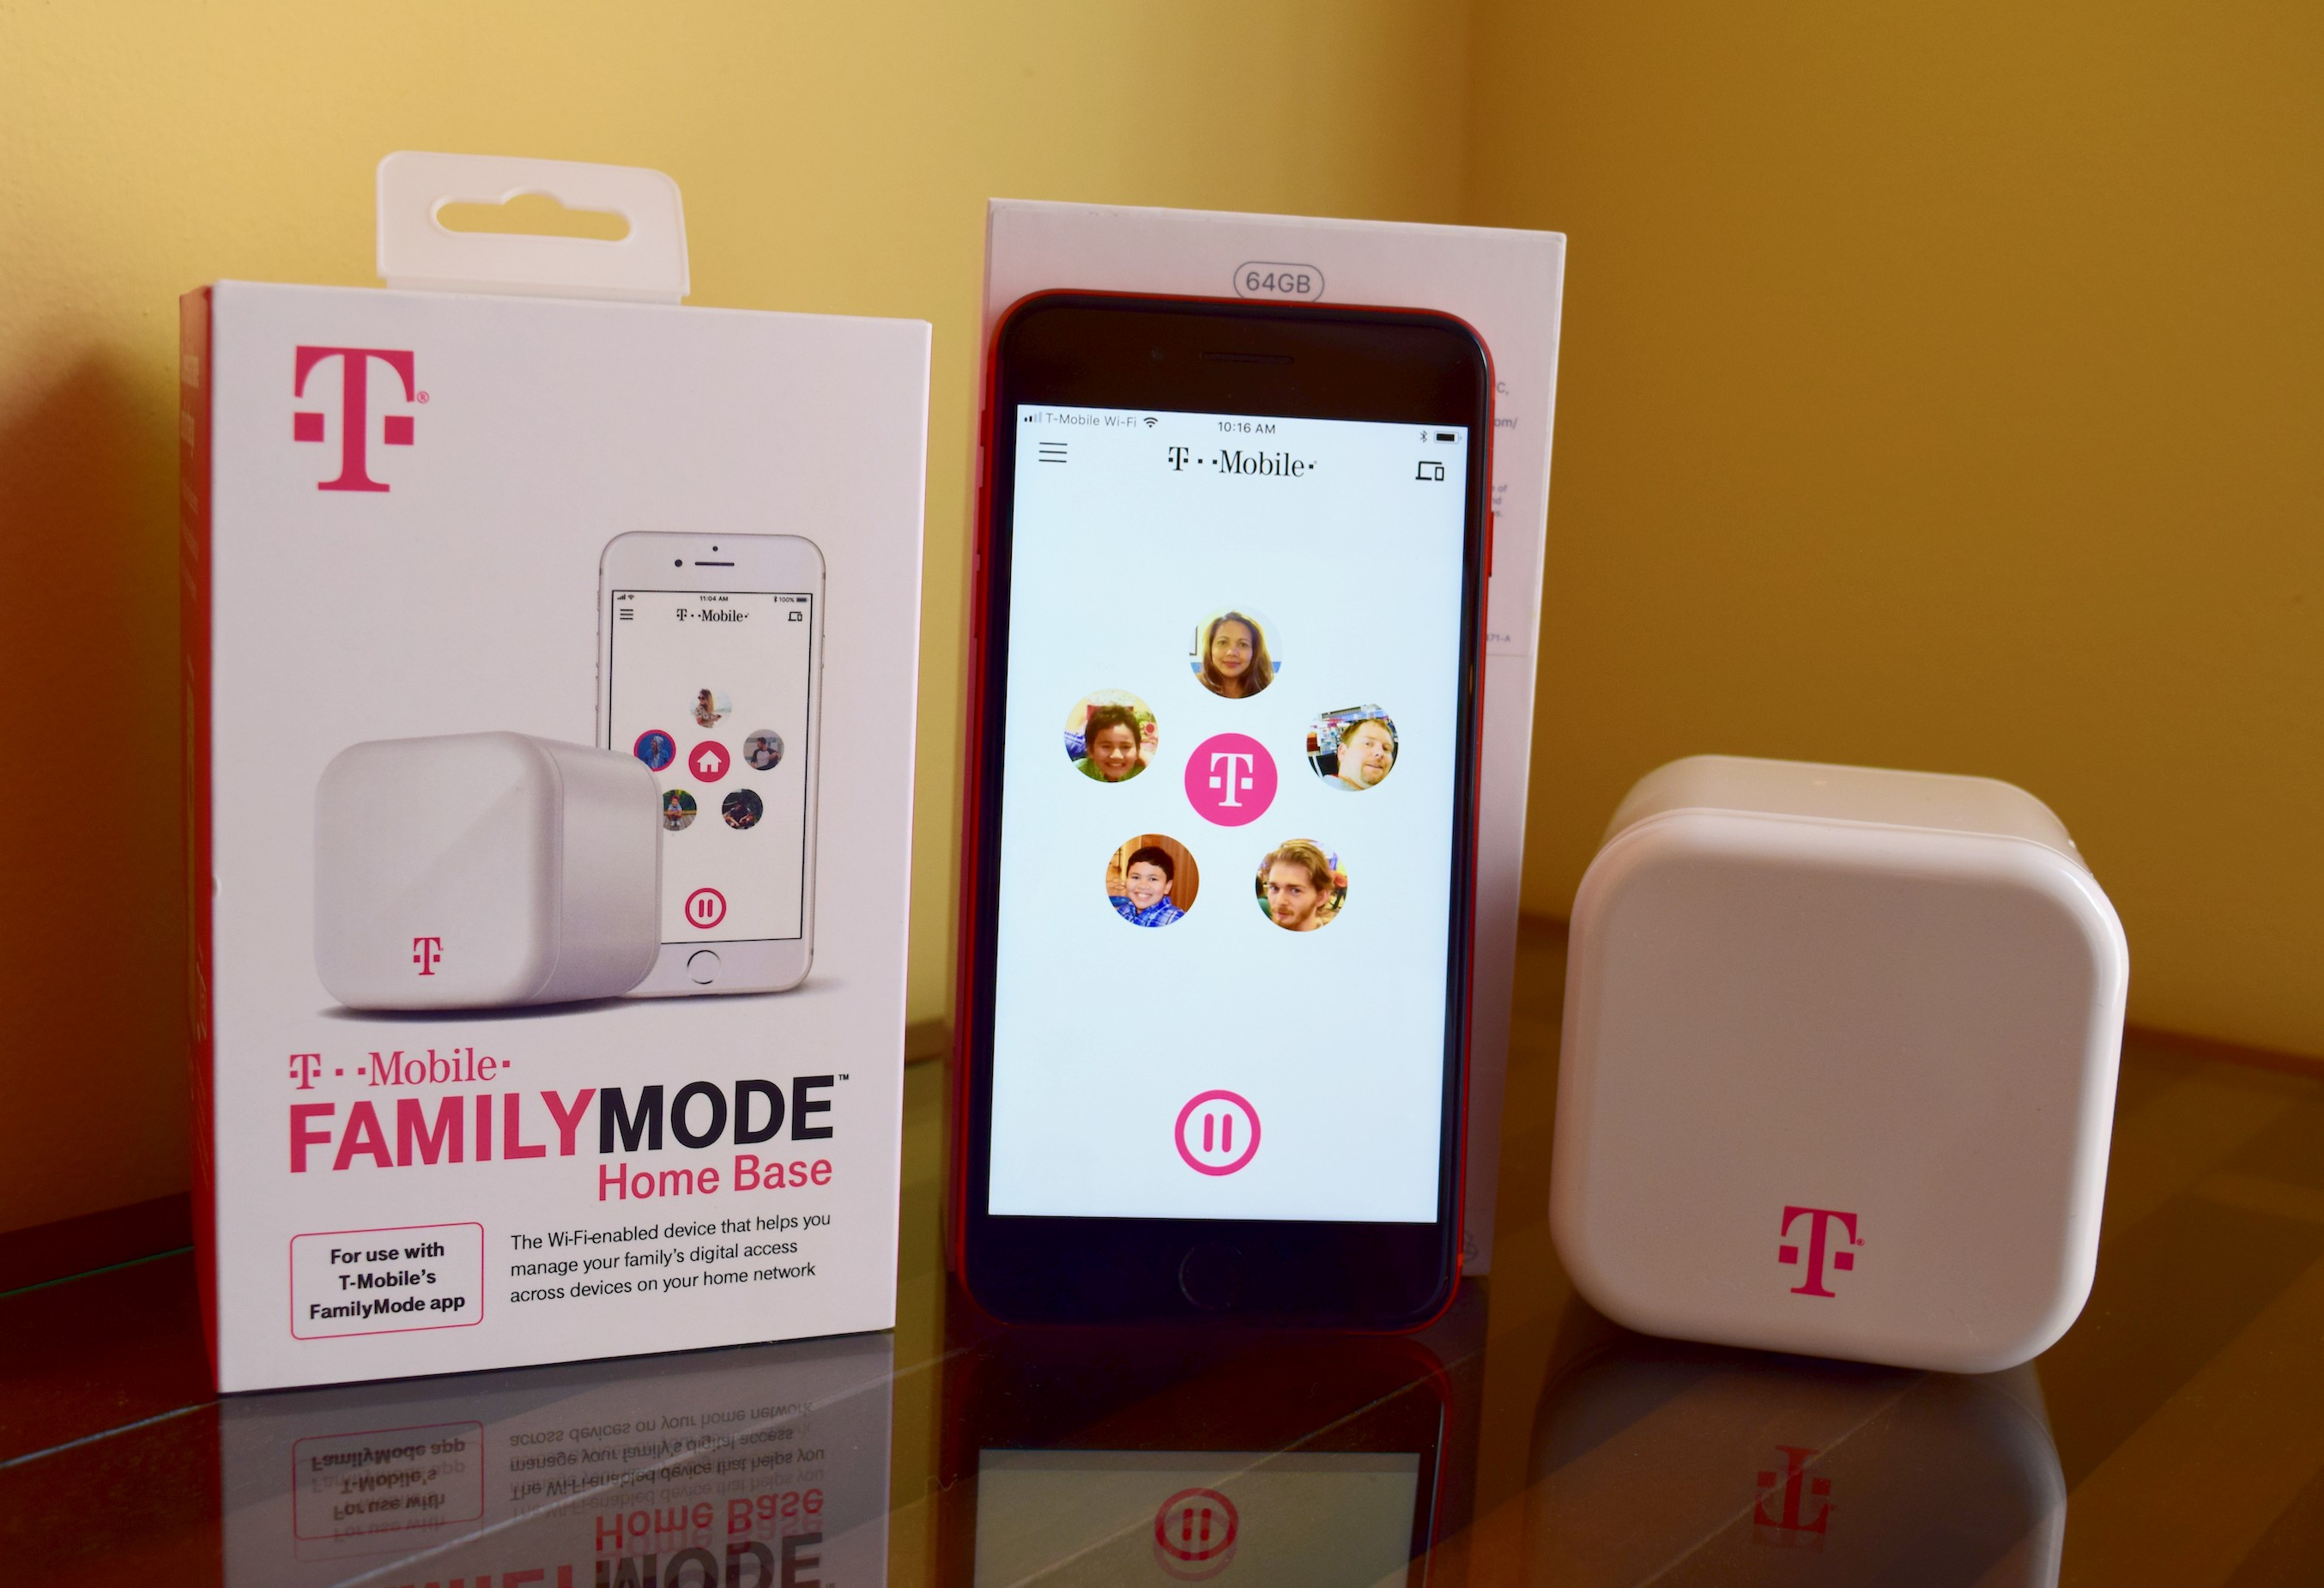 While the carriers' solutions only cover the devices connected to their networks, T-Mobile FamilyMode lets us do all these on our kids' phones, tablets, gaming consoles, laptops, smart TVs and the other Wi-Fi-connected devices in our home.